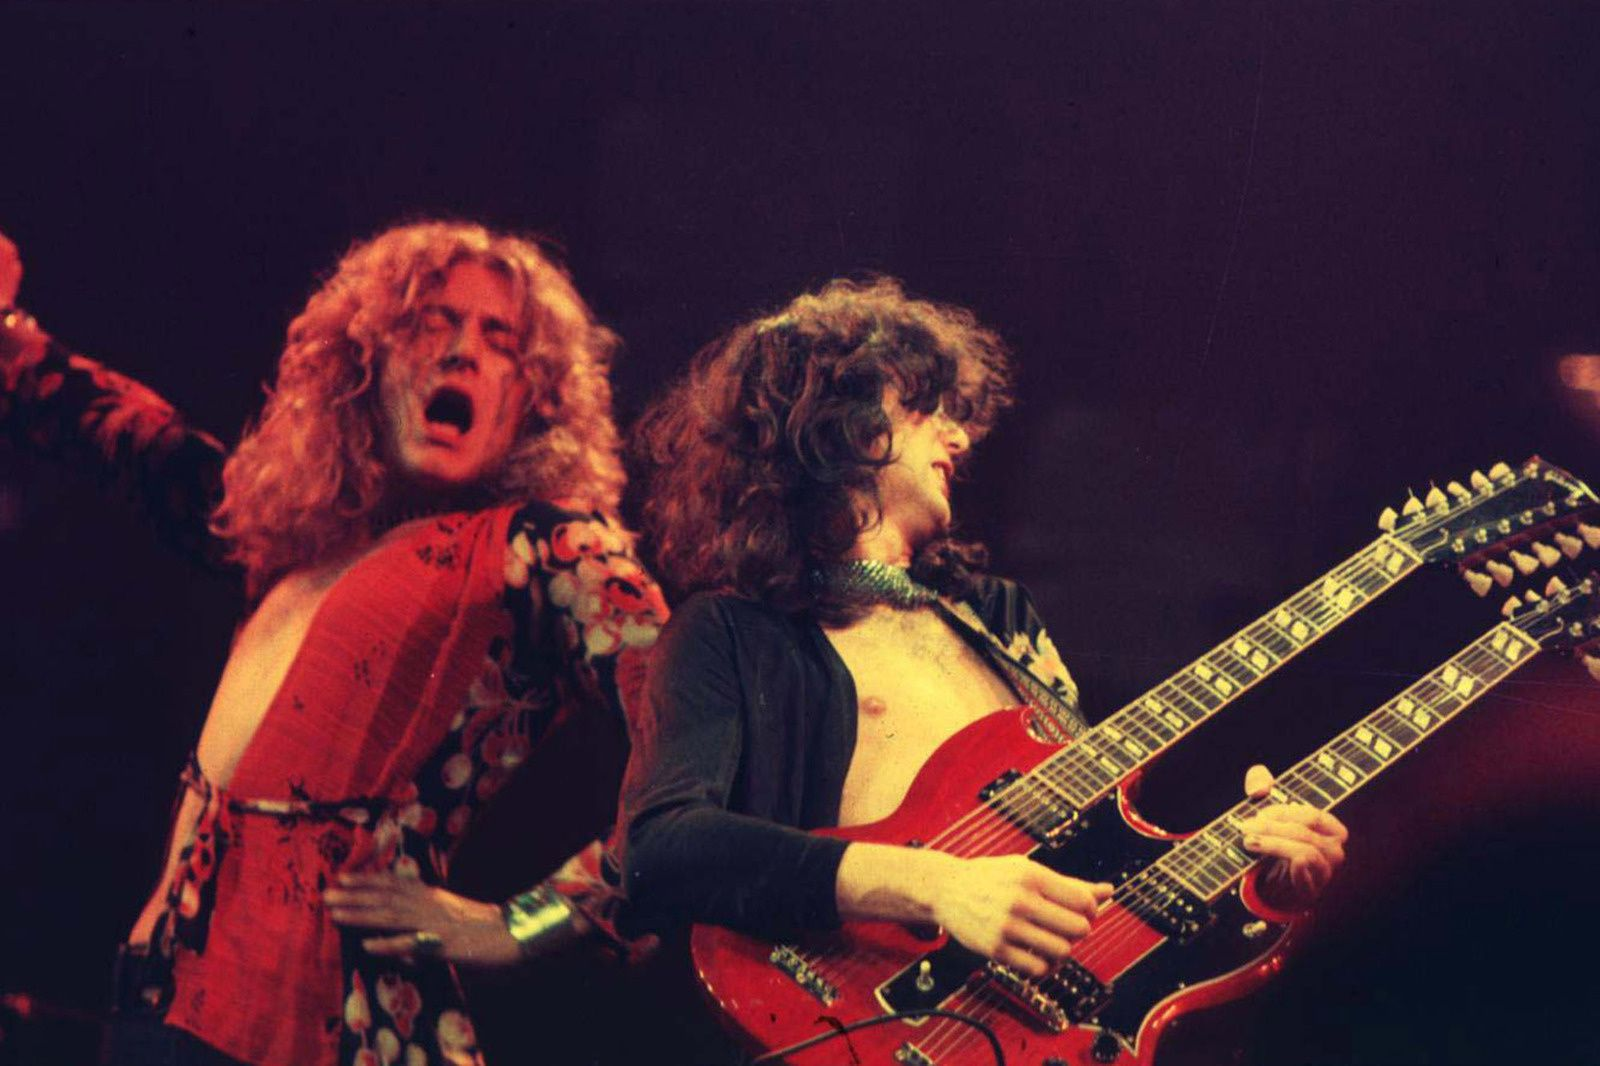 Robert Plant and Jimmy Page of Led Zeppelin playing in Chicago in 1975 - Photo WireImage